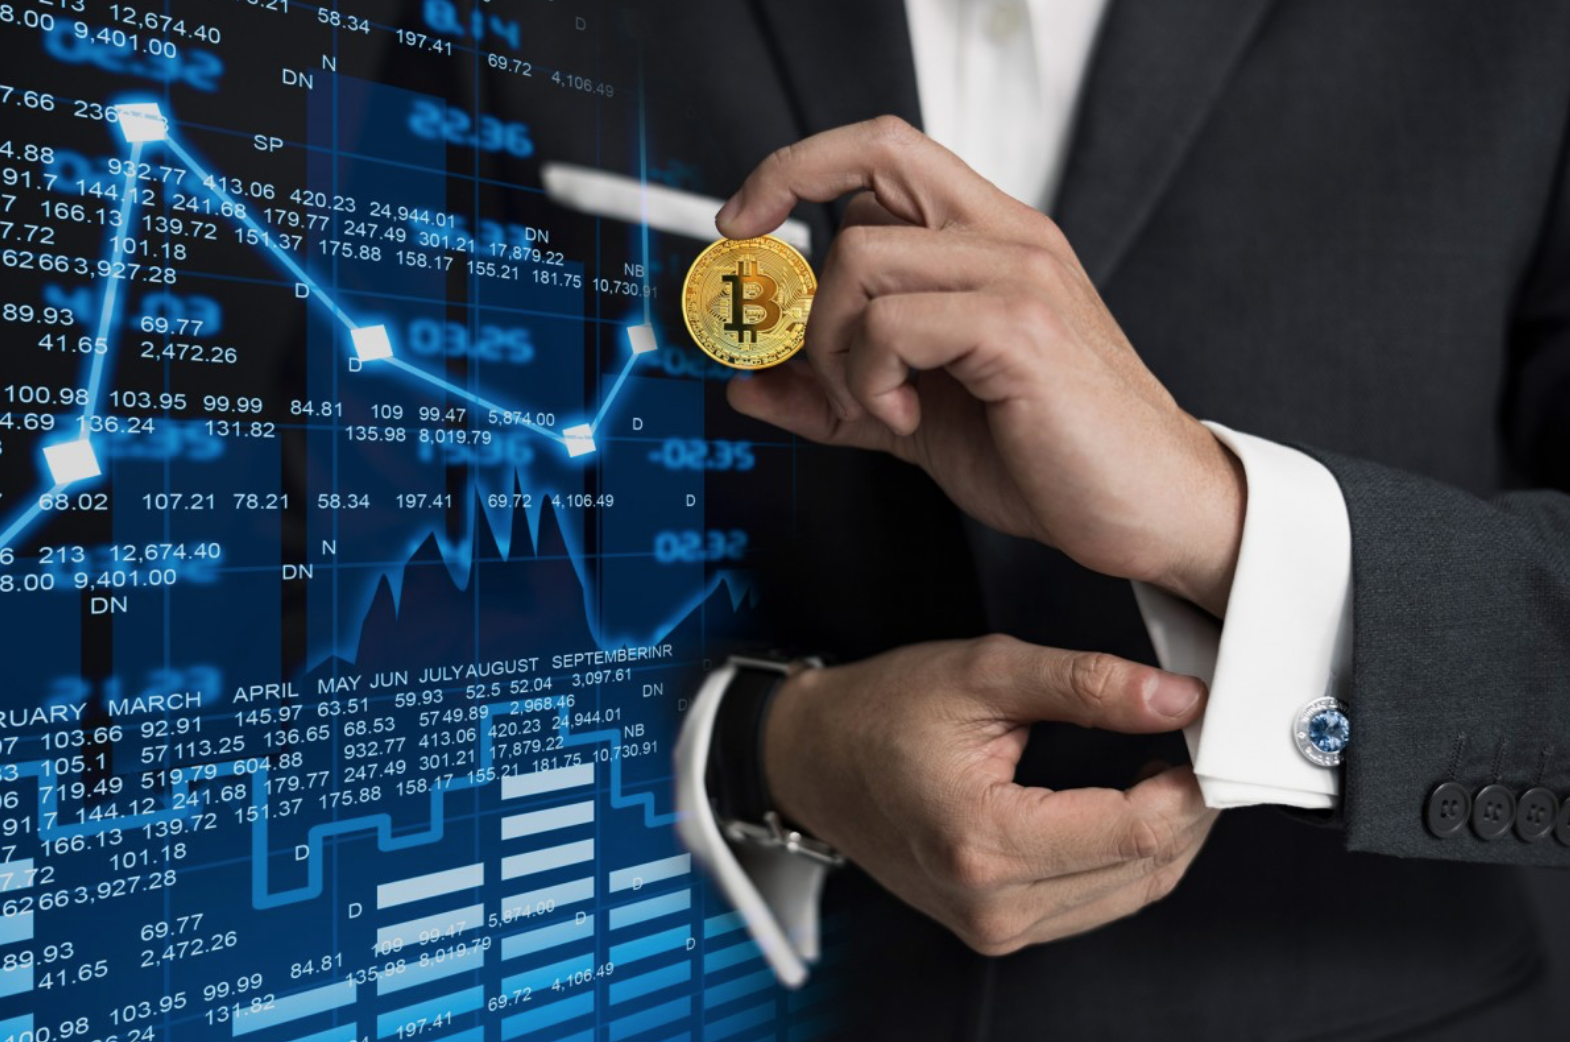 The Libra will be backed by reserves, and will not operate on a permissionless blockchain. For this reason, some say it resembles fiat currency, as opposed to Bitcoin and other cryptocurrencies.